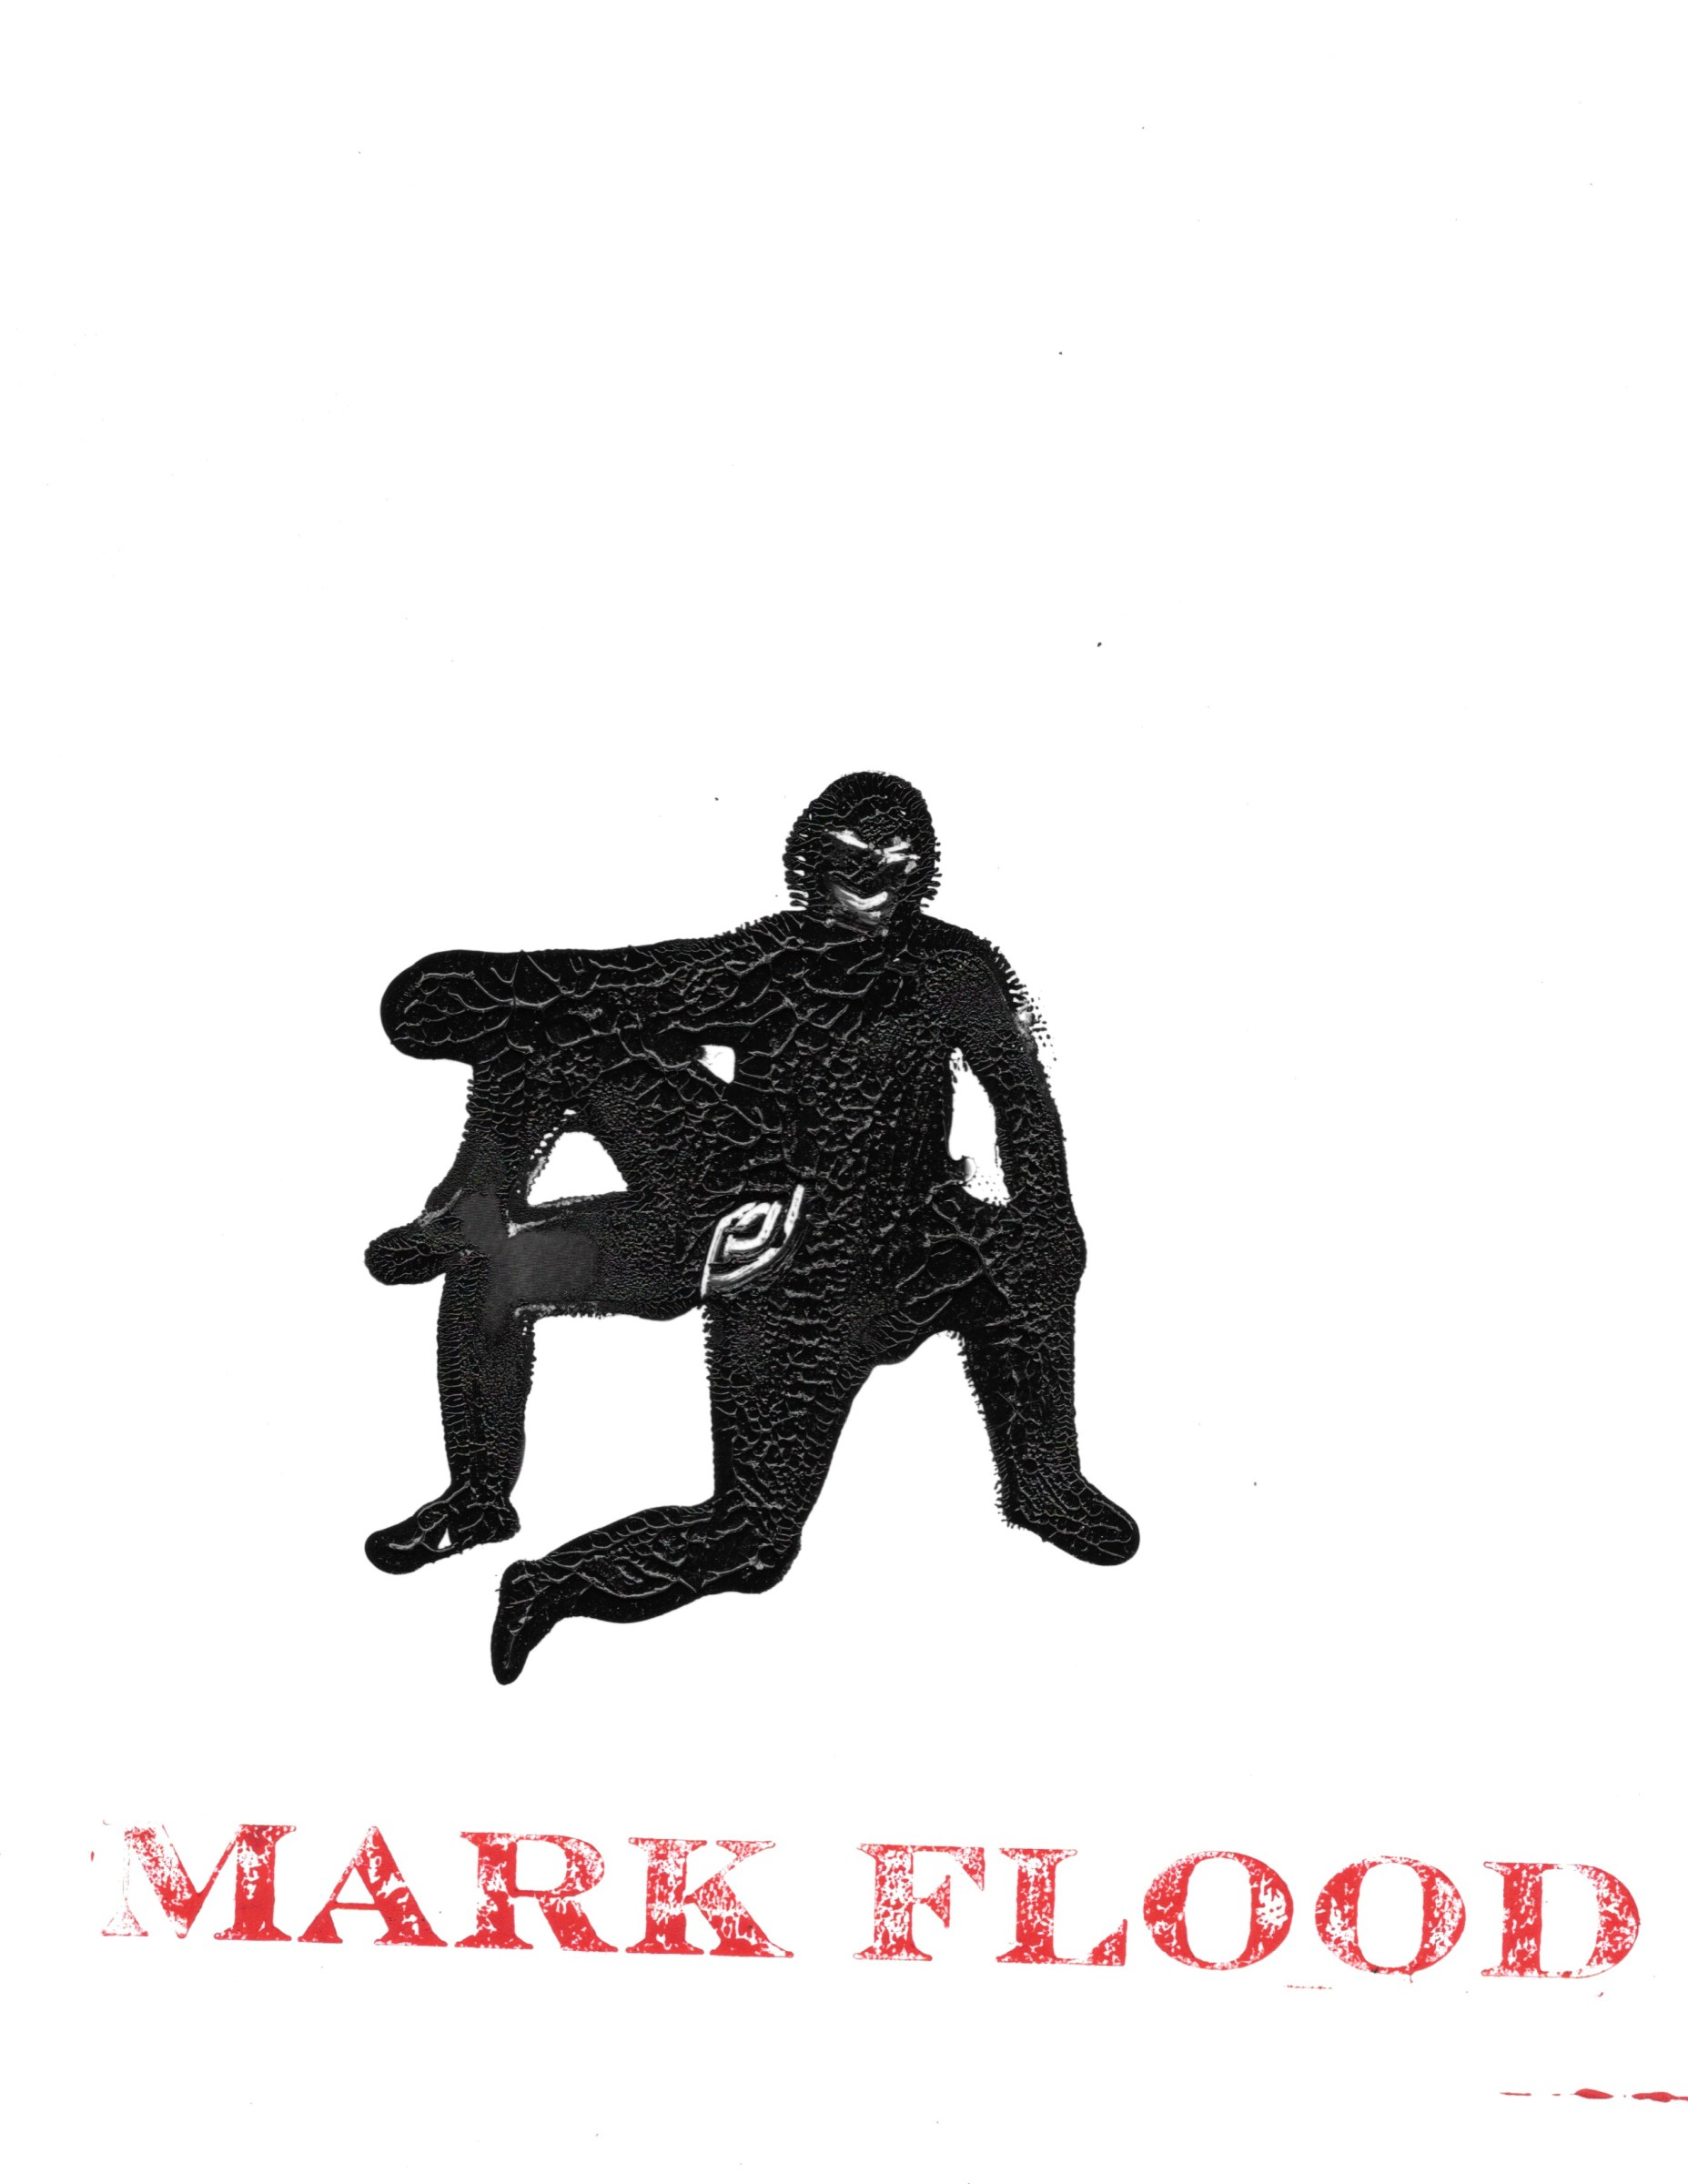 <span class=&#34;link fancybox-details-link&#34;><a href=&#34;/artworks/316-mark-flood-monster-bodies-2018/&#34;>View Detail Page</a></span><div class=&#34;artist&#34;><strong>Mark Flood</strong></div> <div class=&#34;title&#34;><em>Monster Bodies</em>, 2018</div> <div class=&#34;medium&#34;>Acrylic silk screen on paper</div> <div class=&#34;dimensions&#34;>8 x 11 in<br /> 20.3 x 27.9 cm</div>